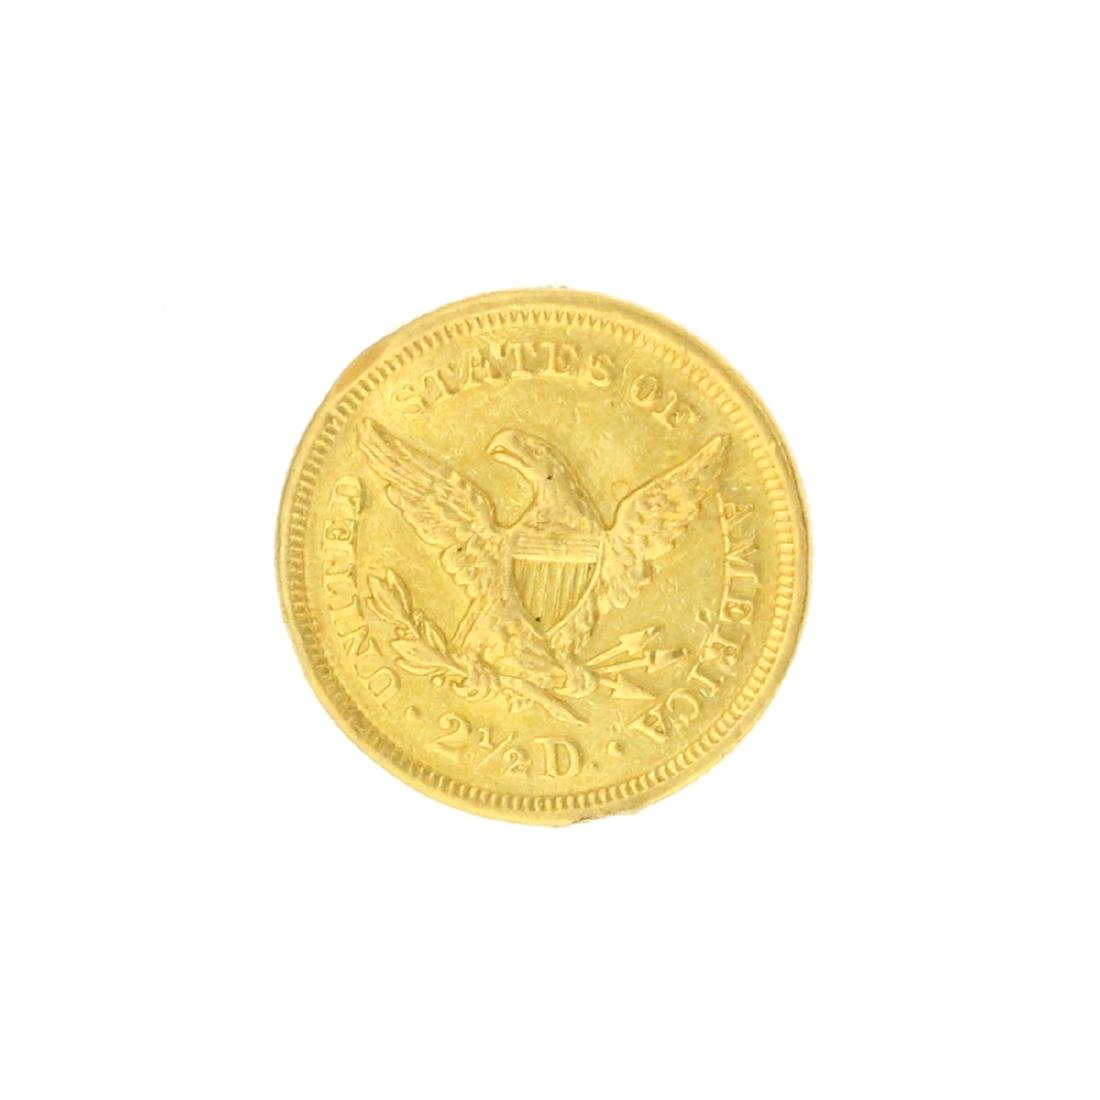 Extremely Rare 1851 $2.50 U.S. Liberty Head Gold Coin - 2